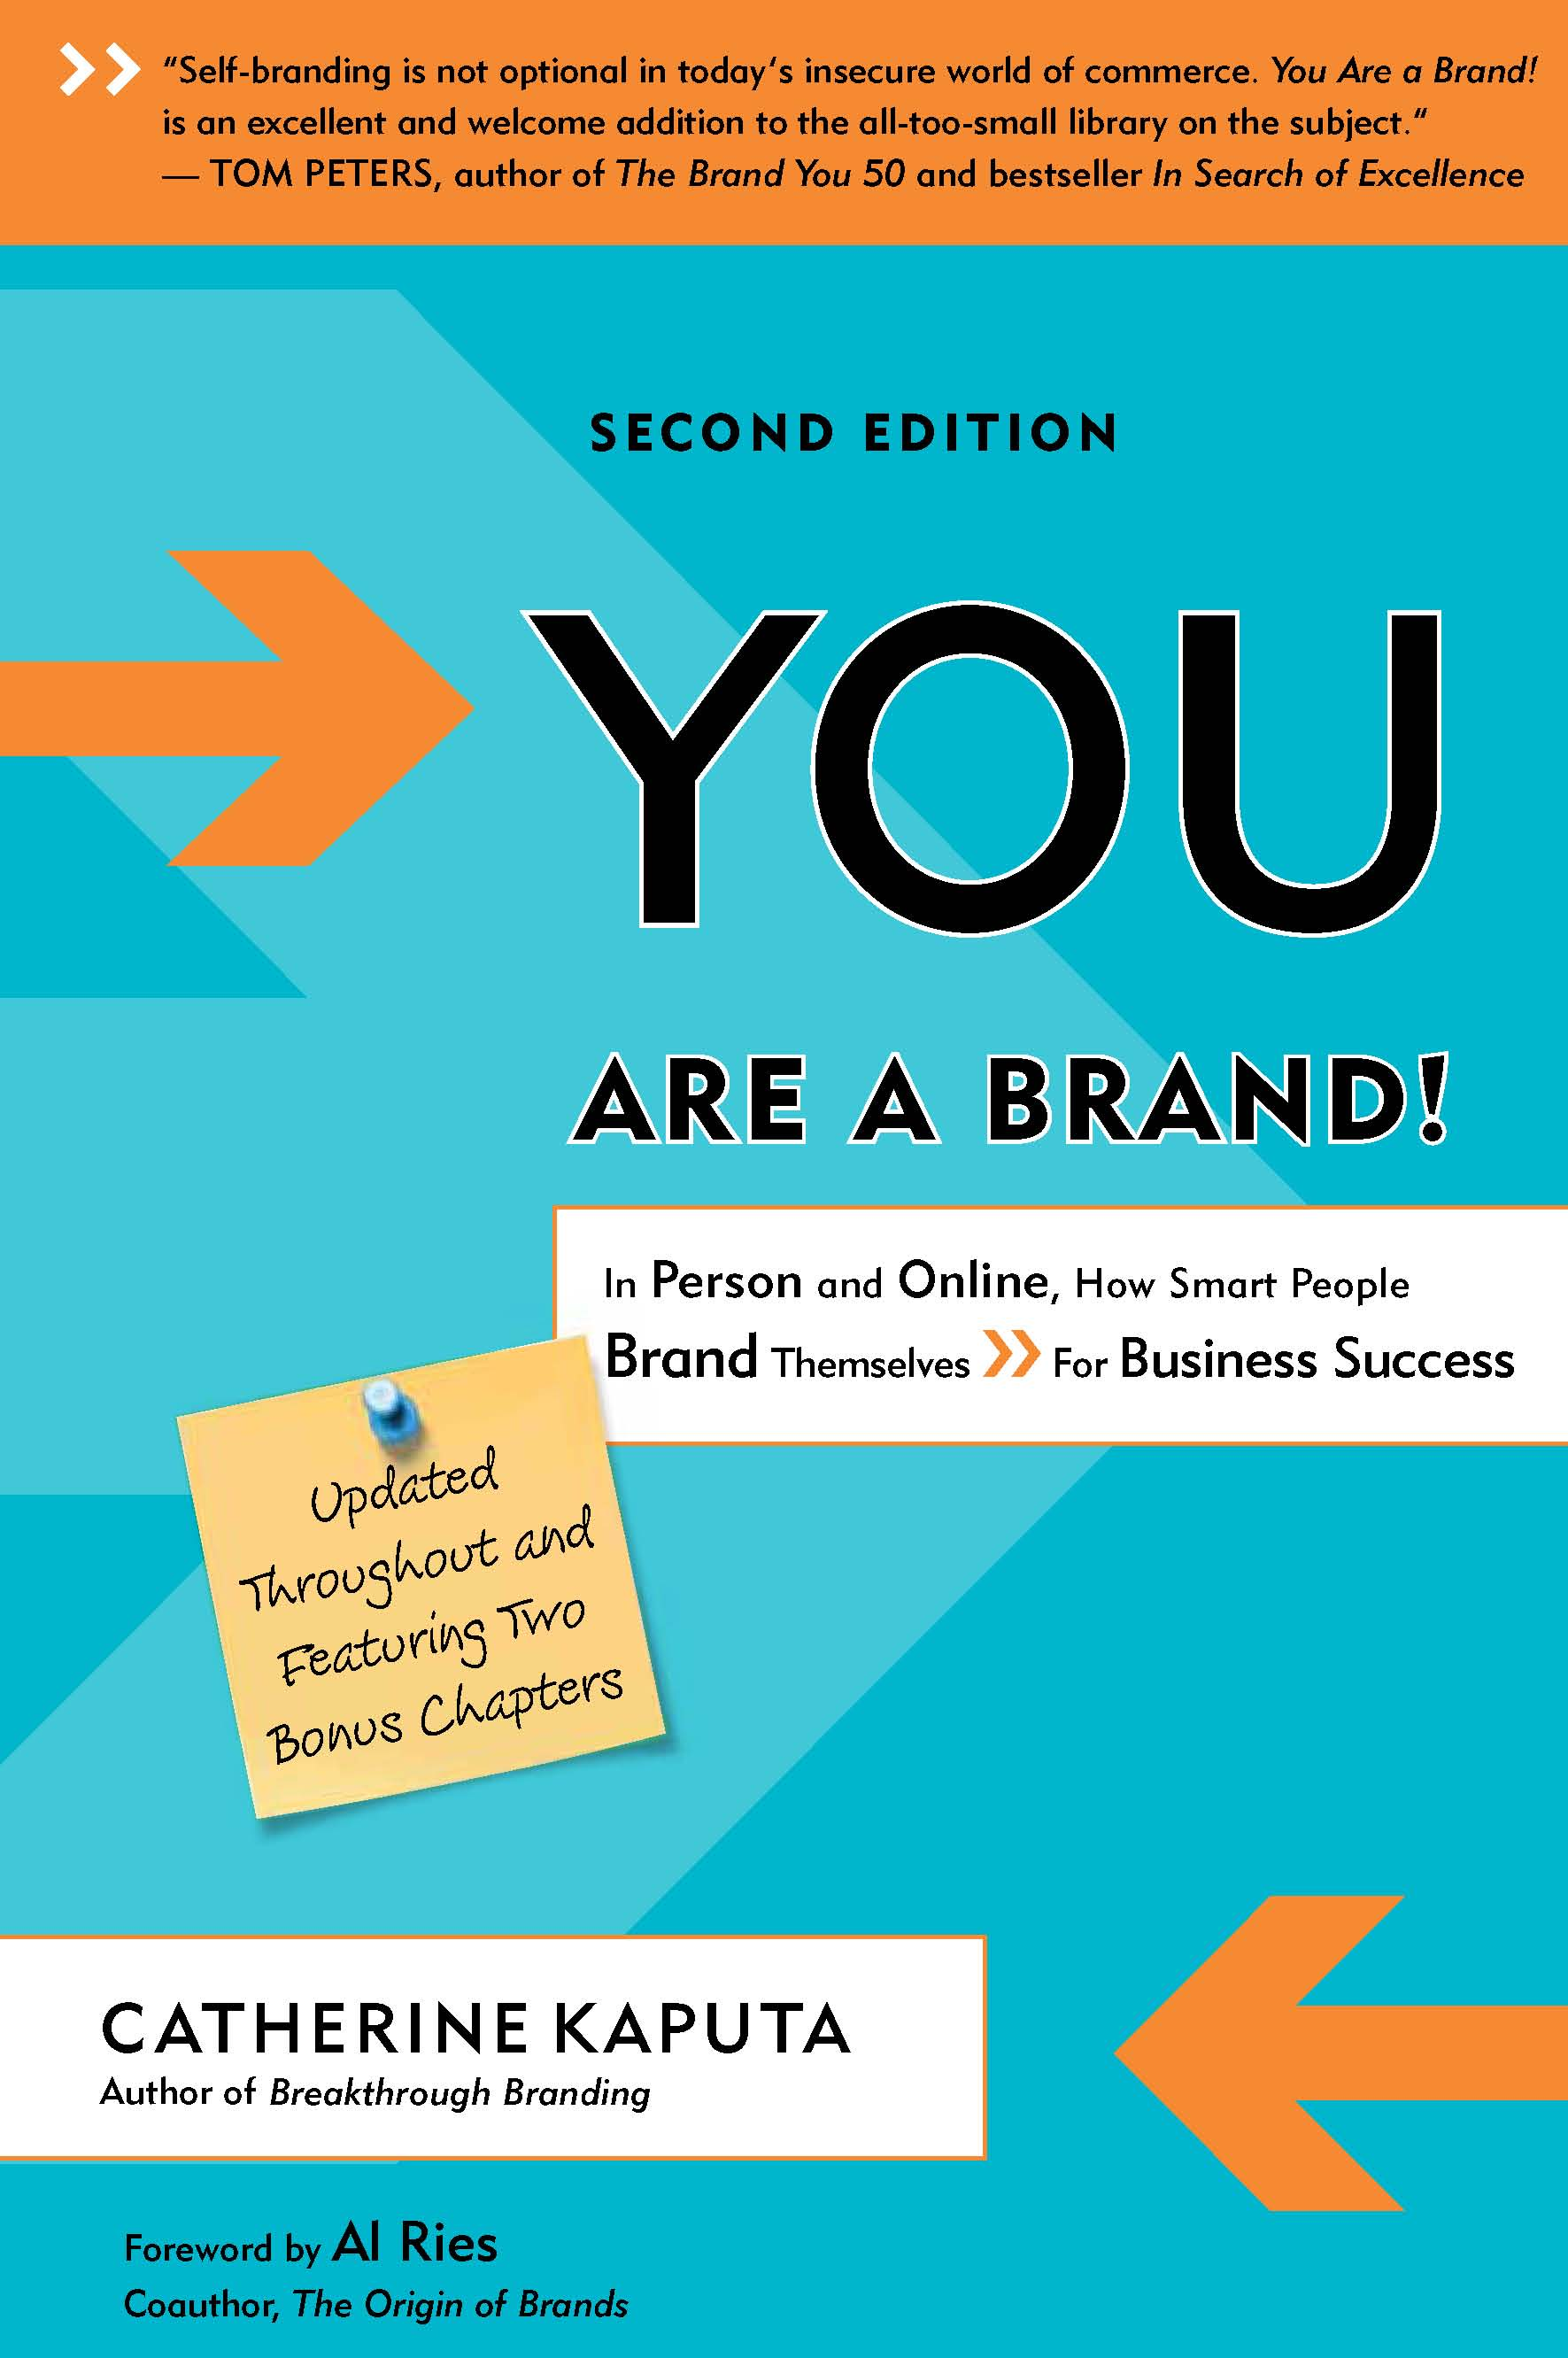 selfbrand tools personal brand strategy online assessment tool ben franklin award for best career book translated into 10 languages